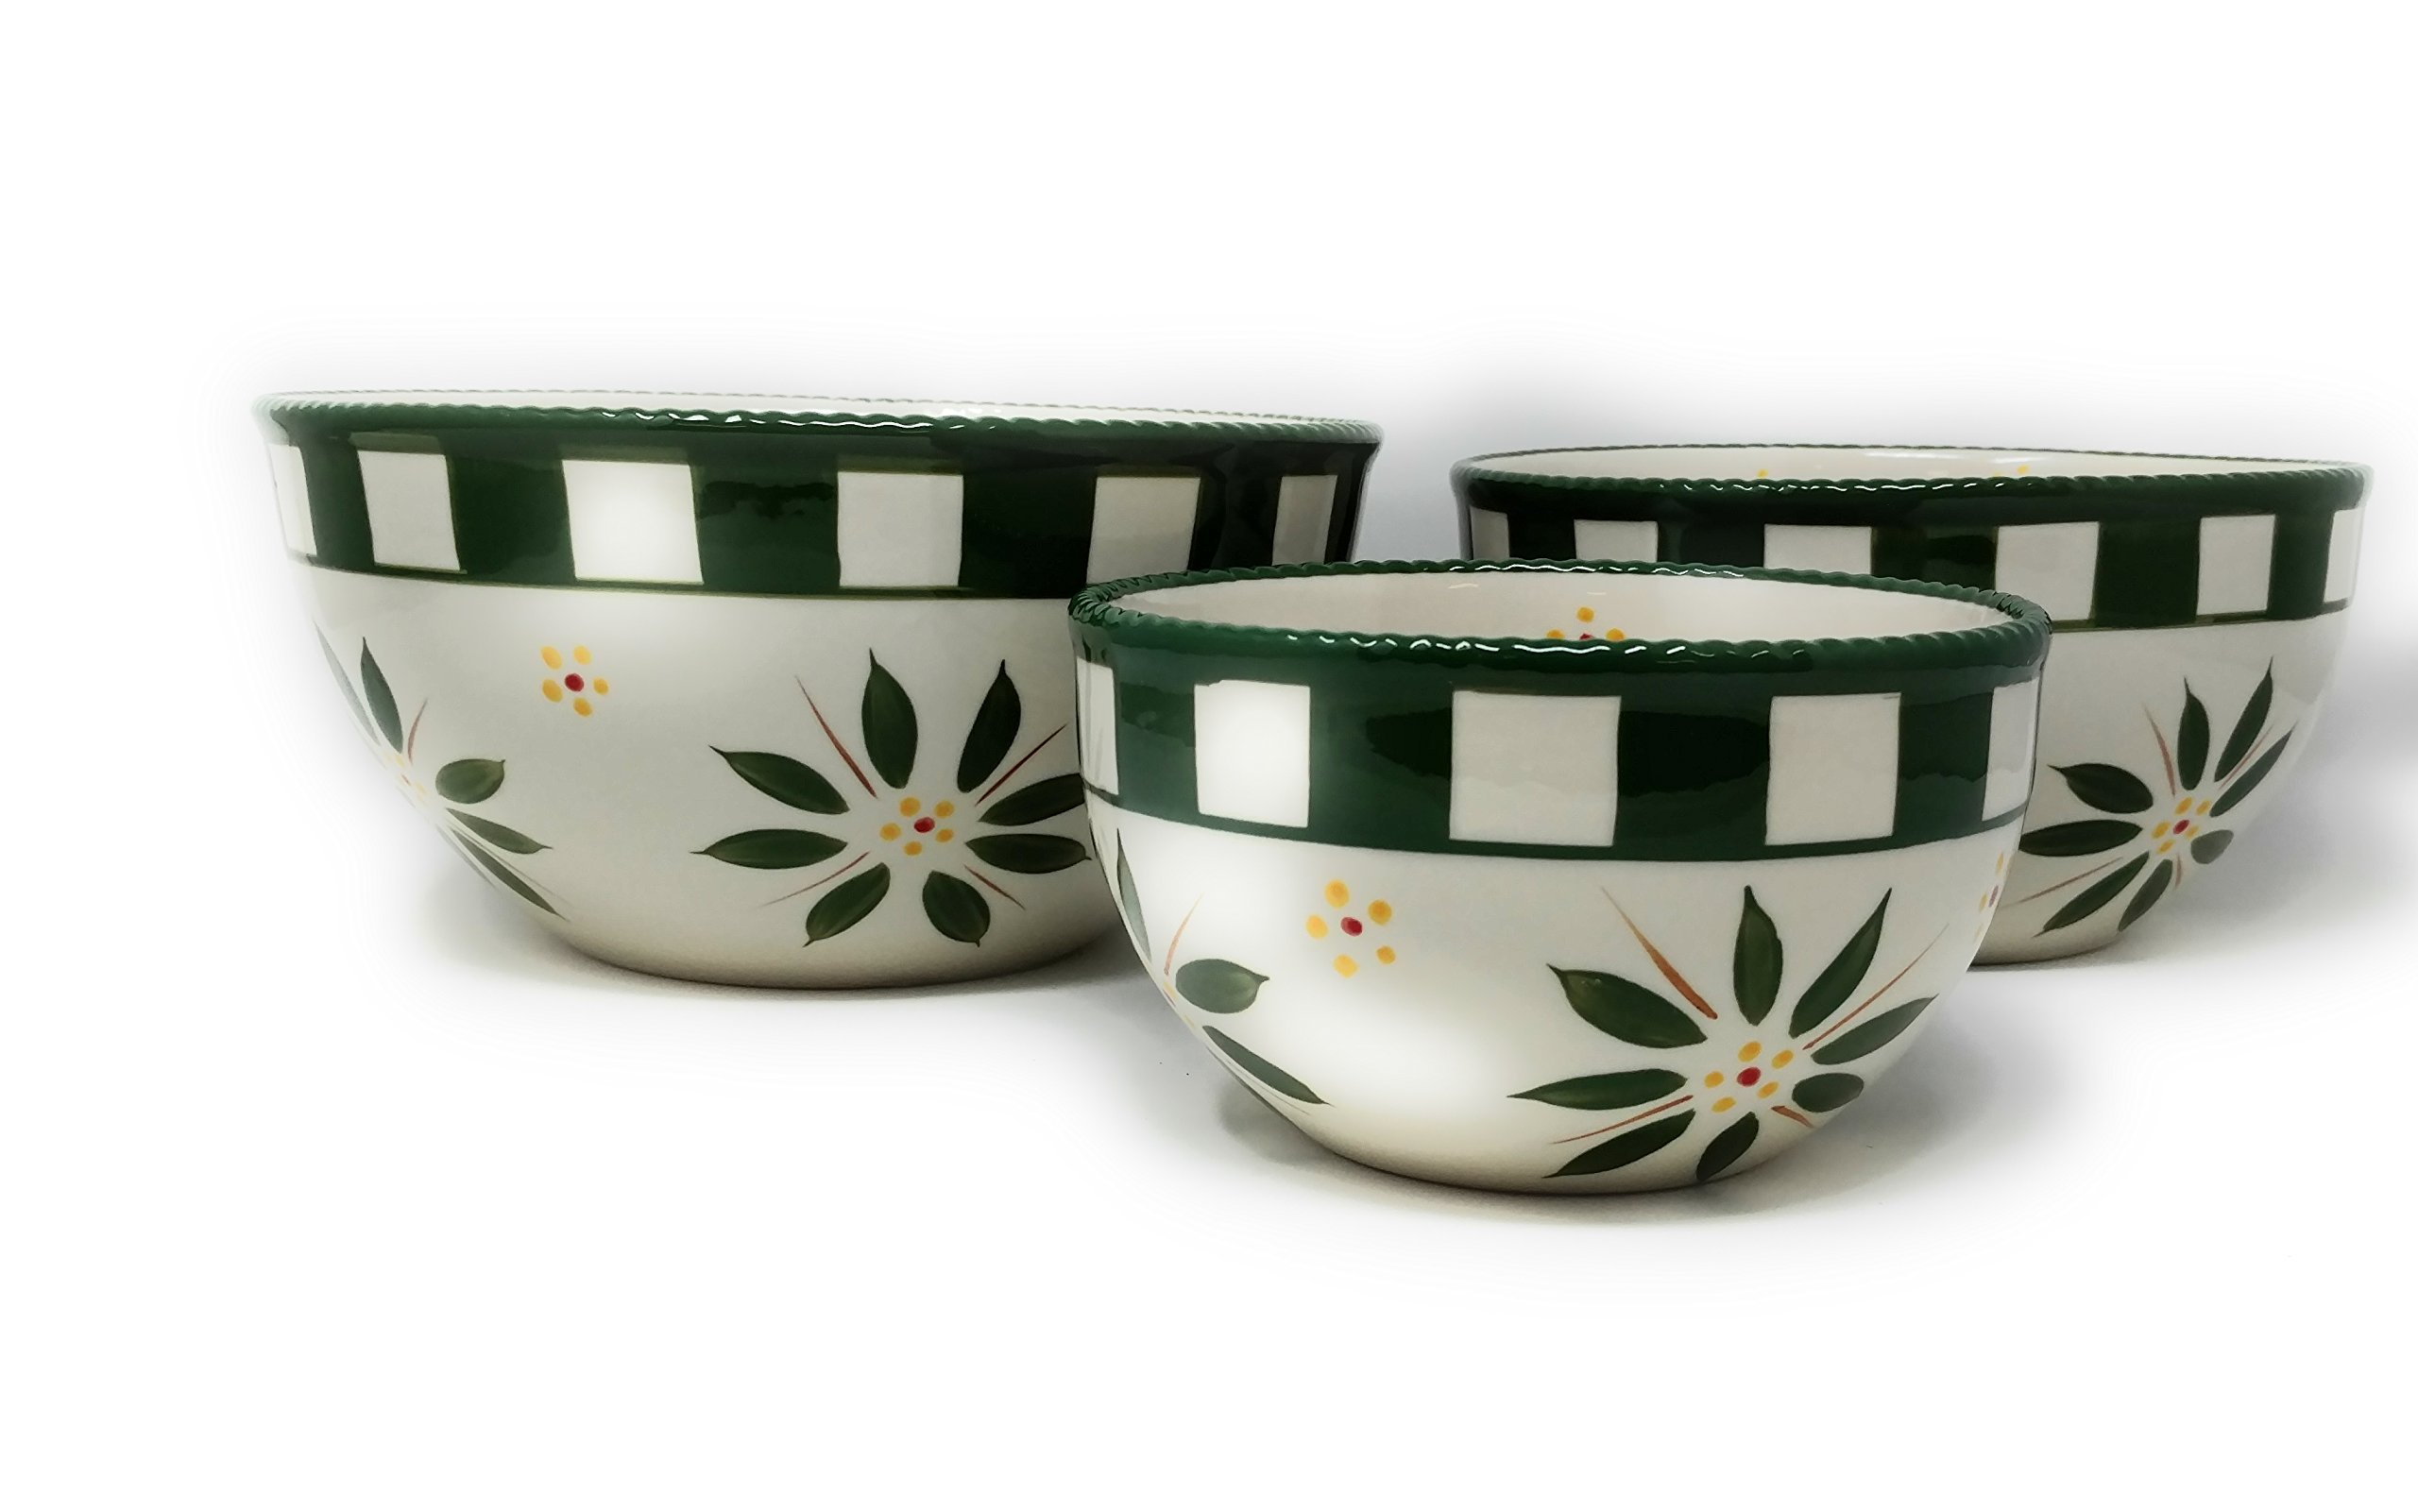 Temp-tations Set of 2 Bowls Mixing or Serving, Nestable (0.5 & 1 Quart Whimsy - 2pc)